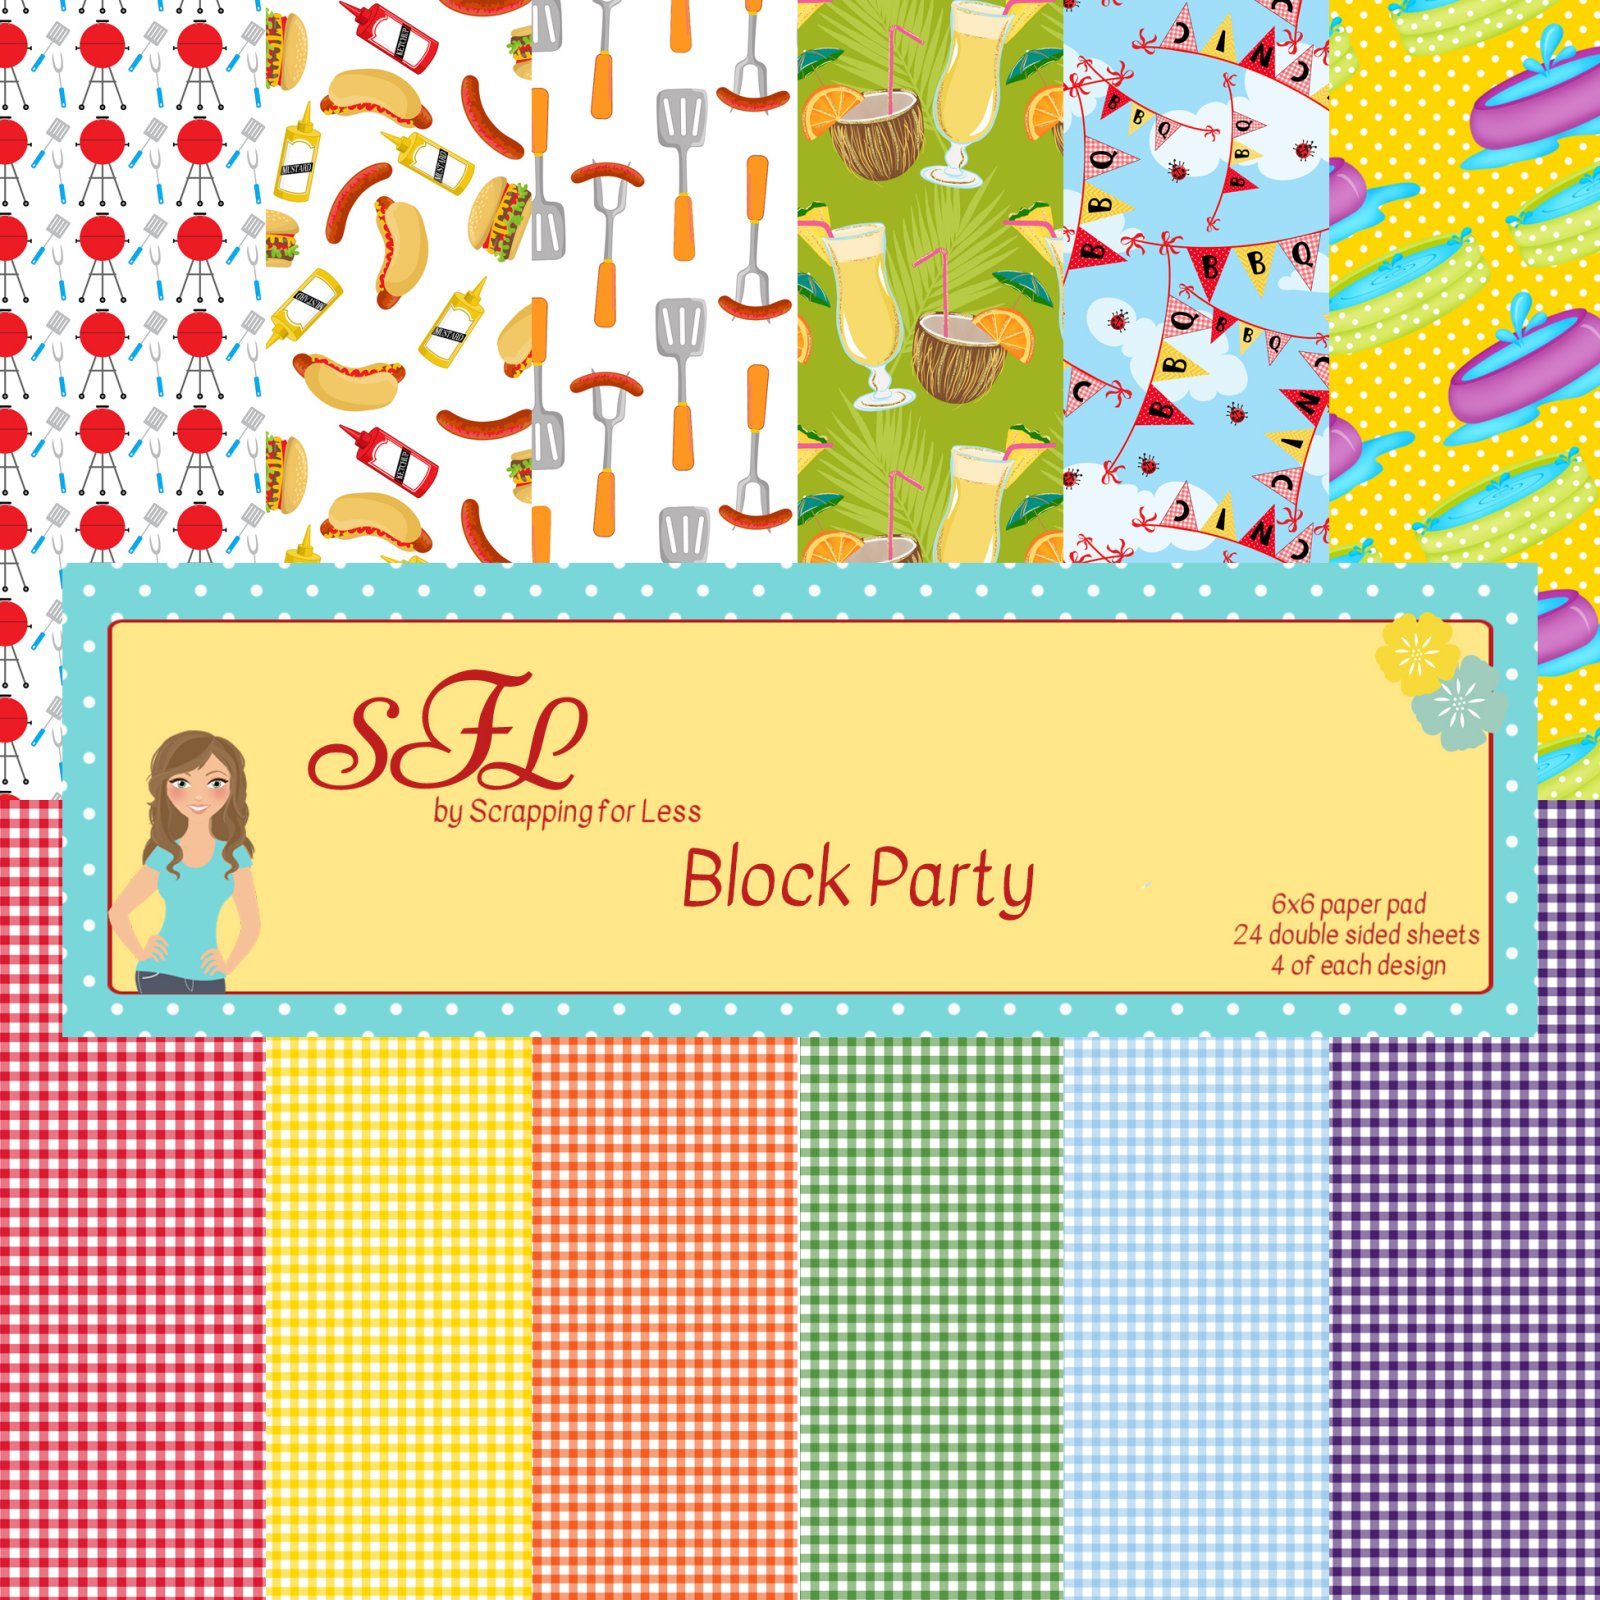 Scrapping for Less Block Party 6x6 Paper Pad